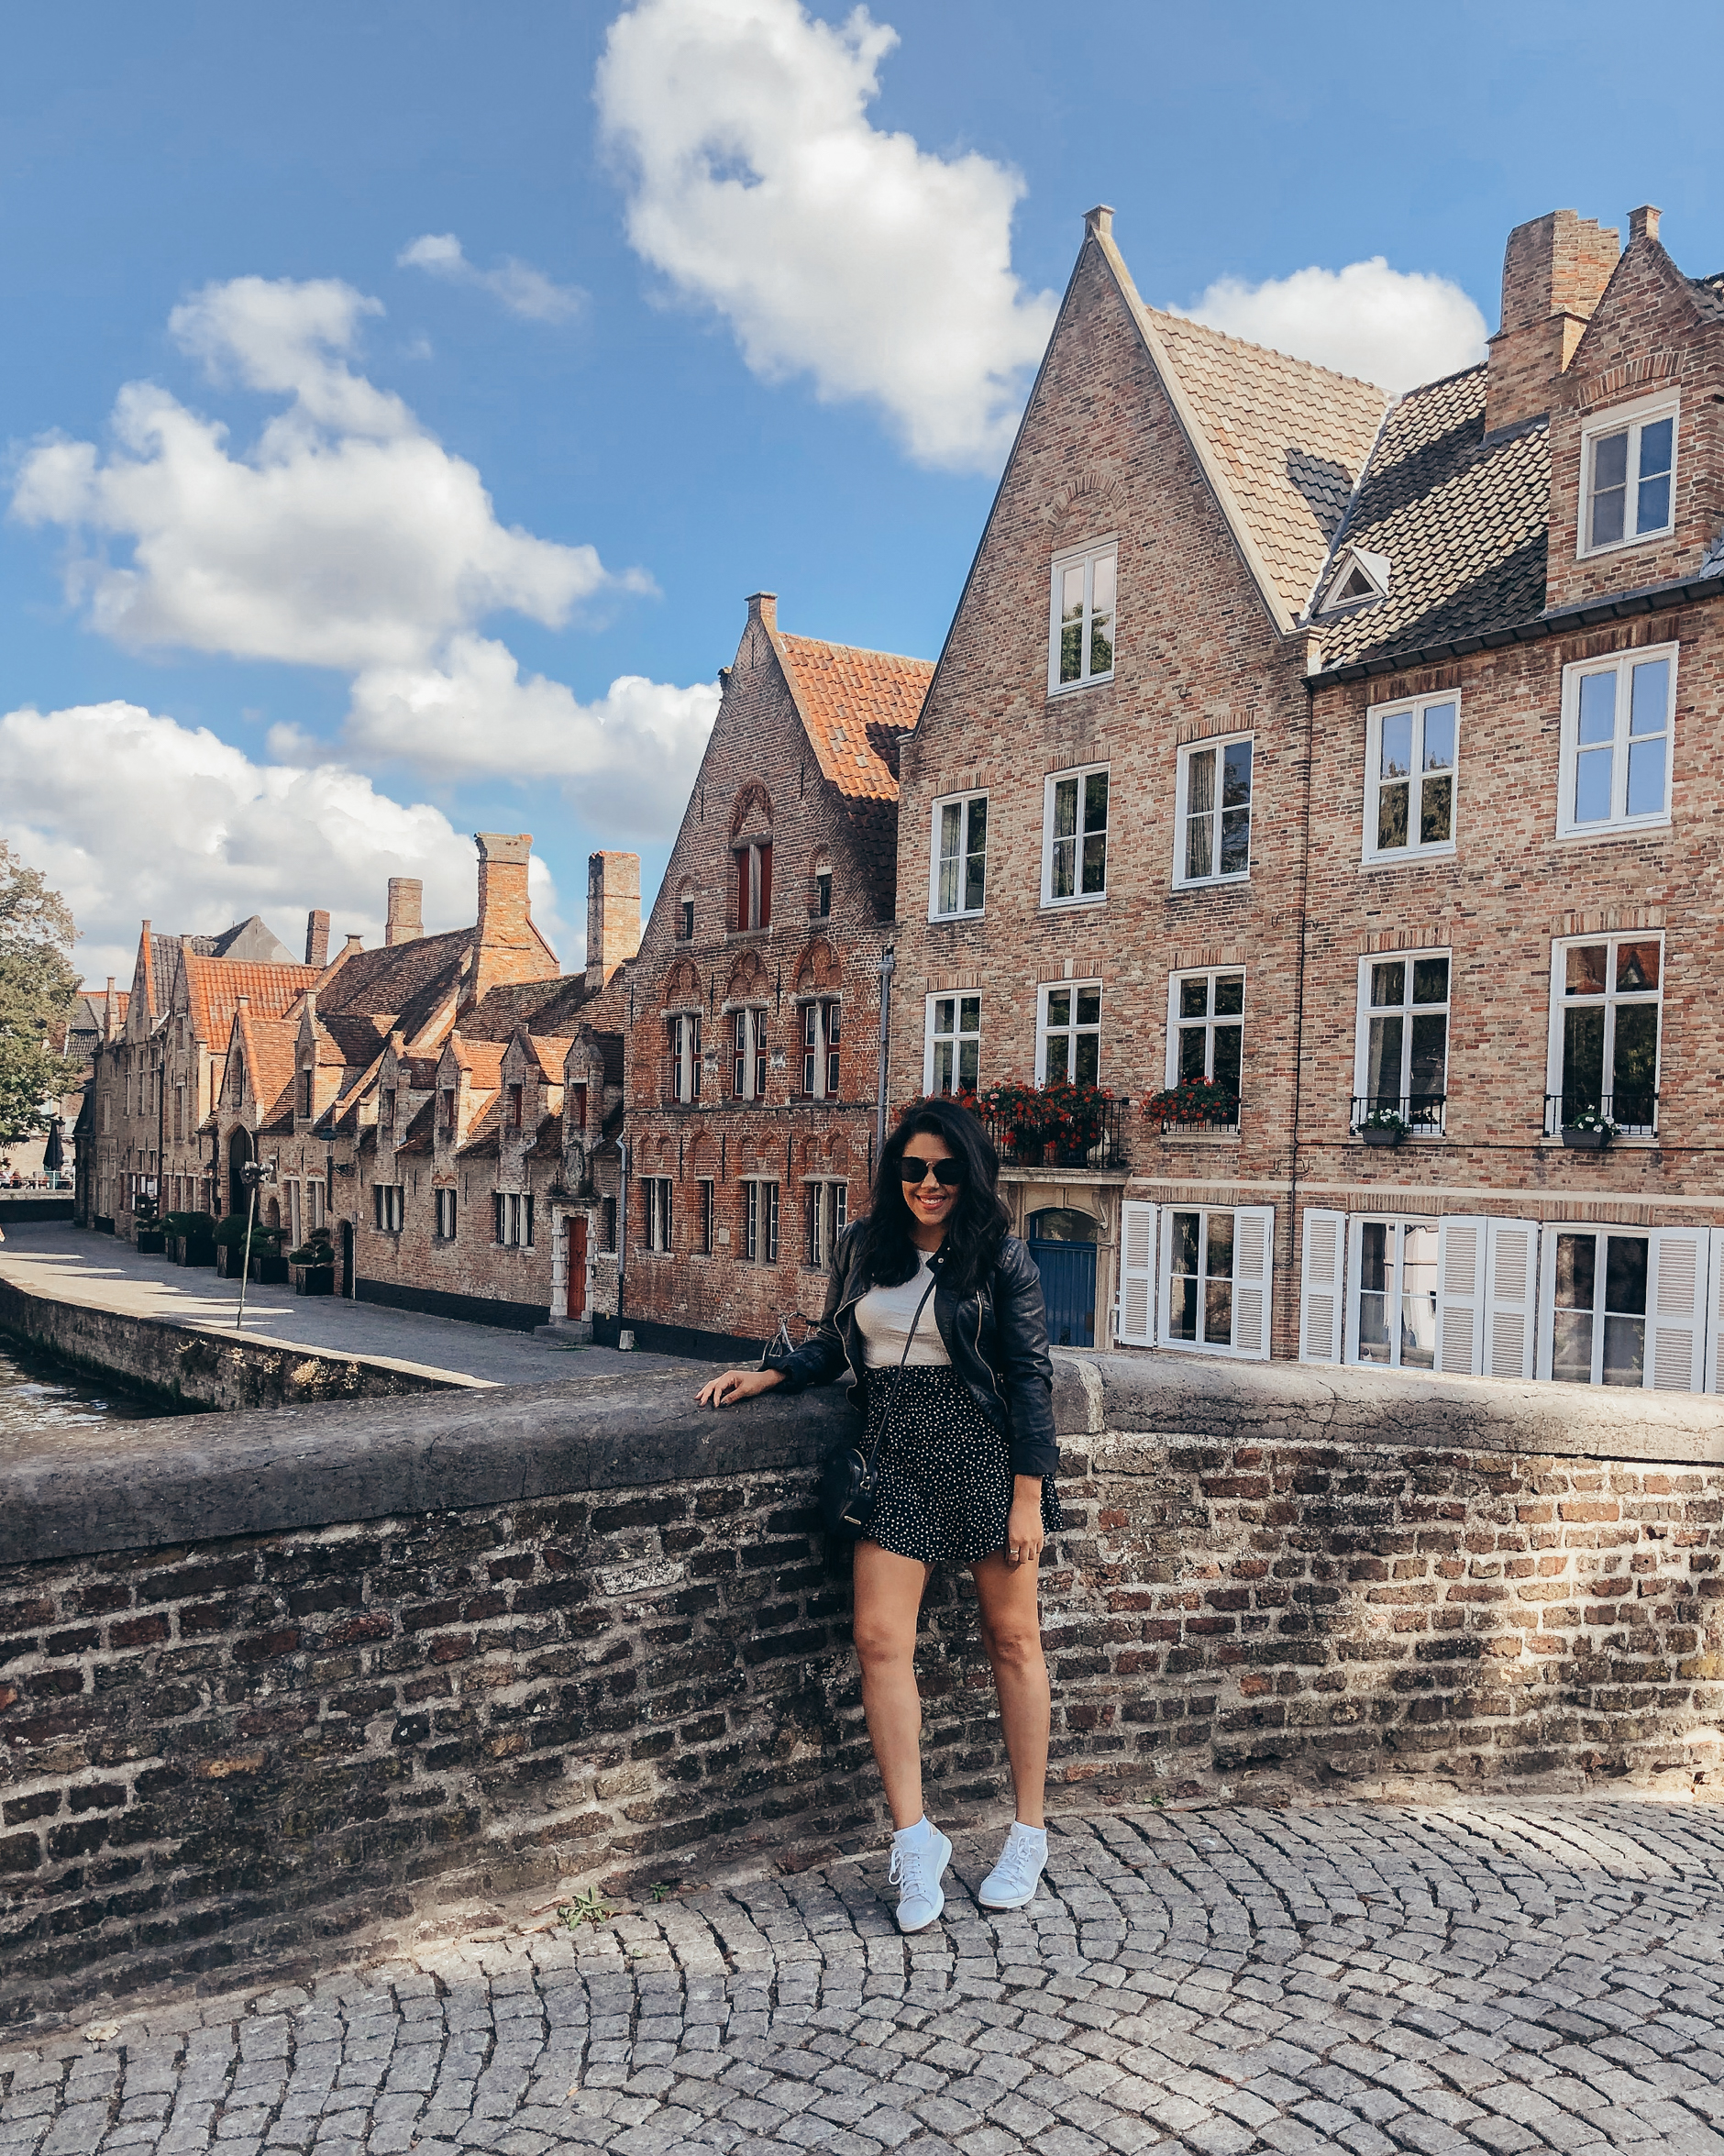 naty michele in bruges belgium